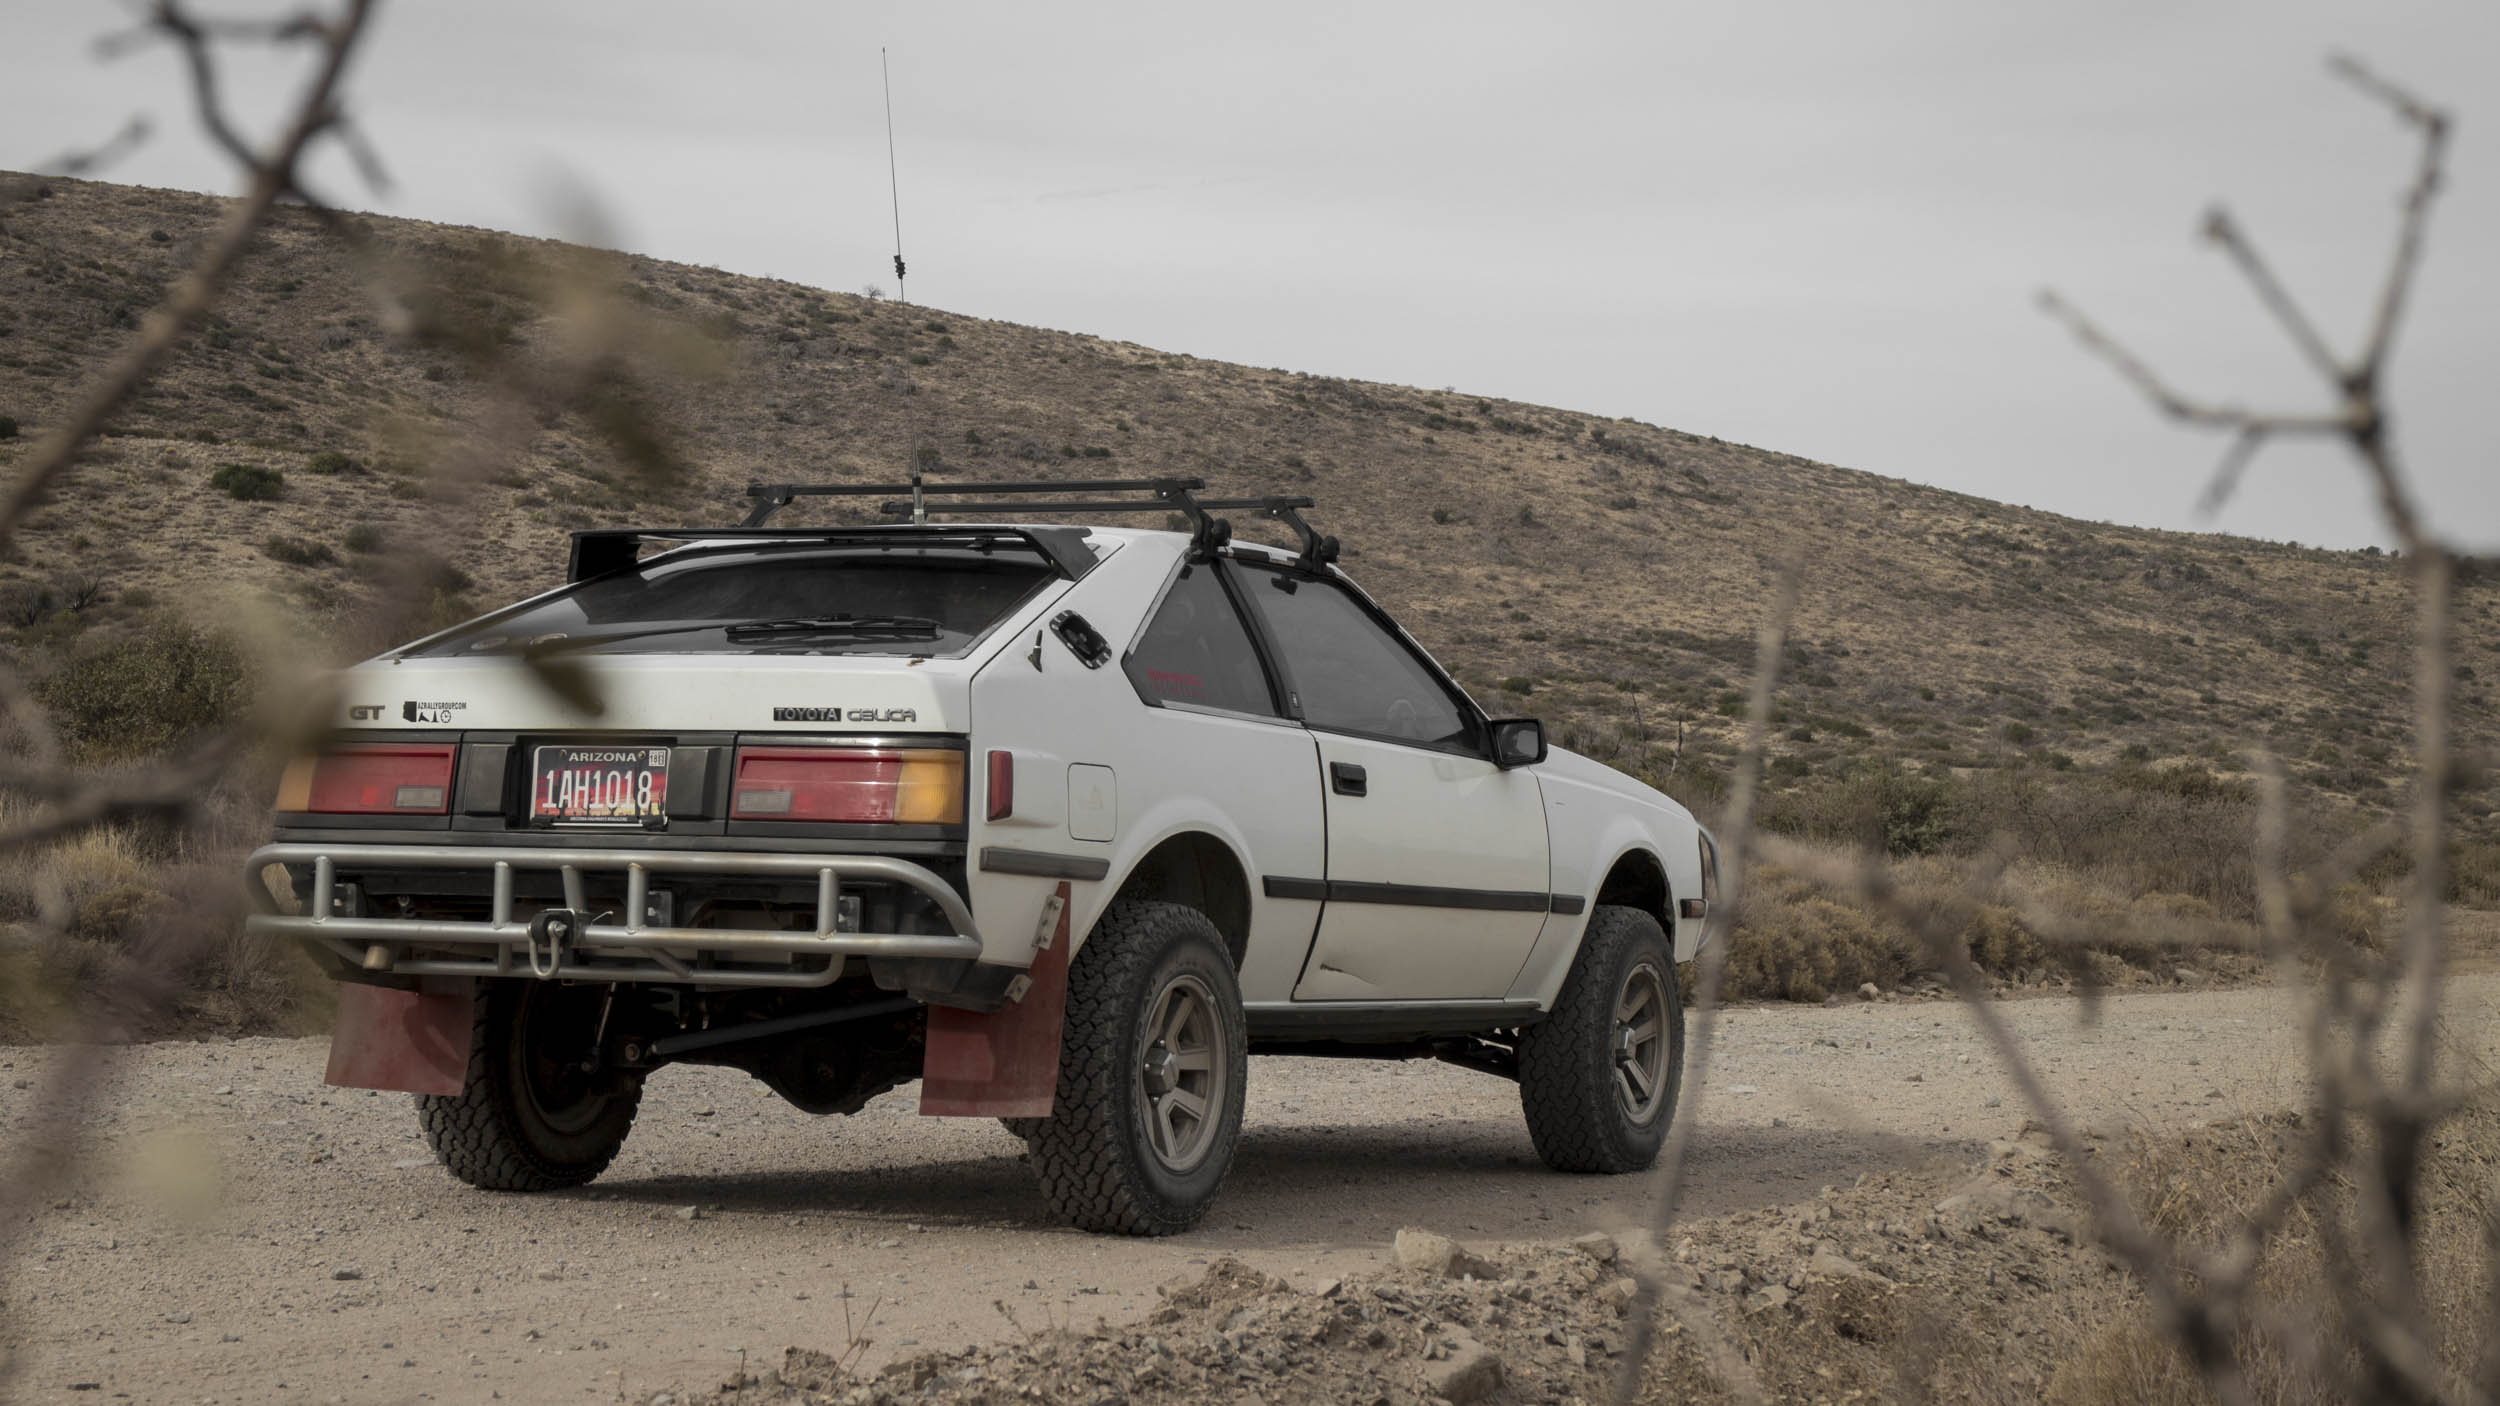 1984 Toyota Celica GT offroad